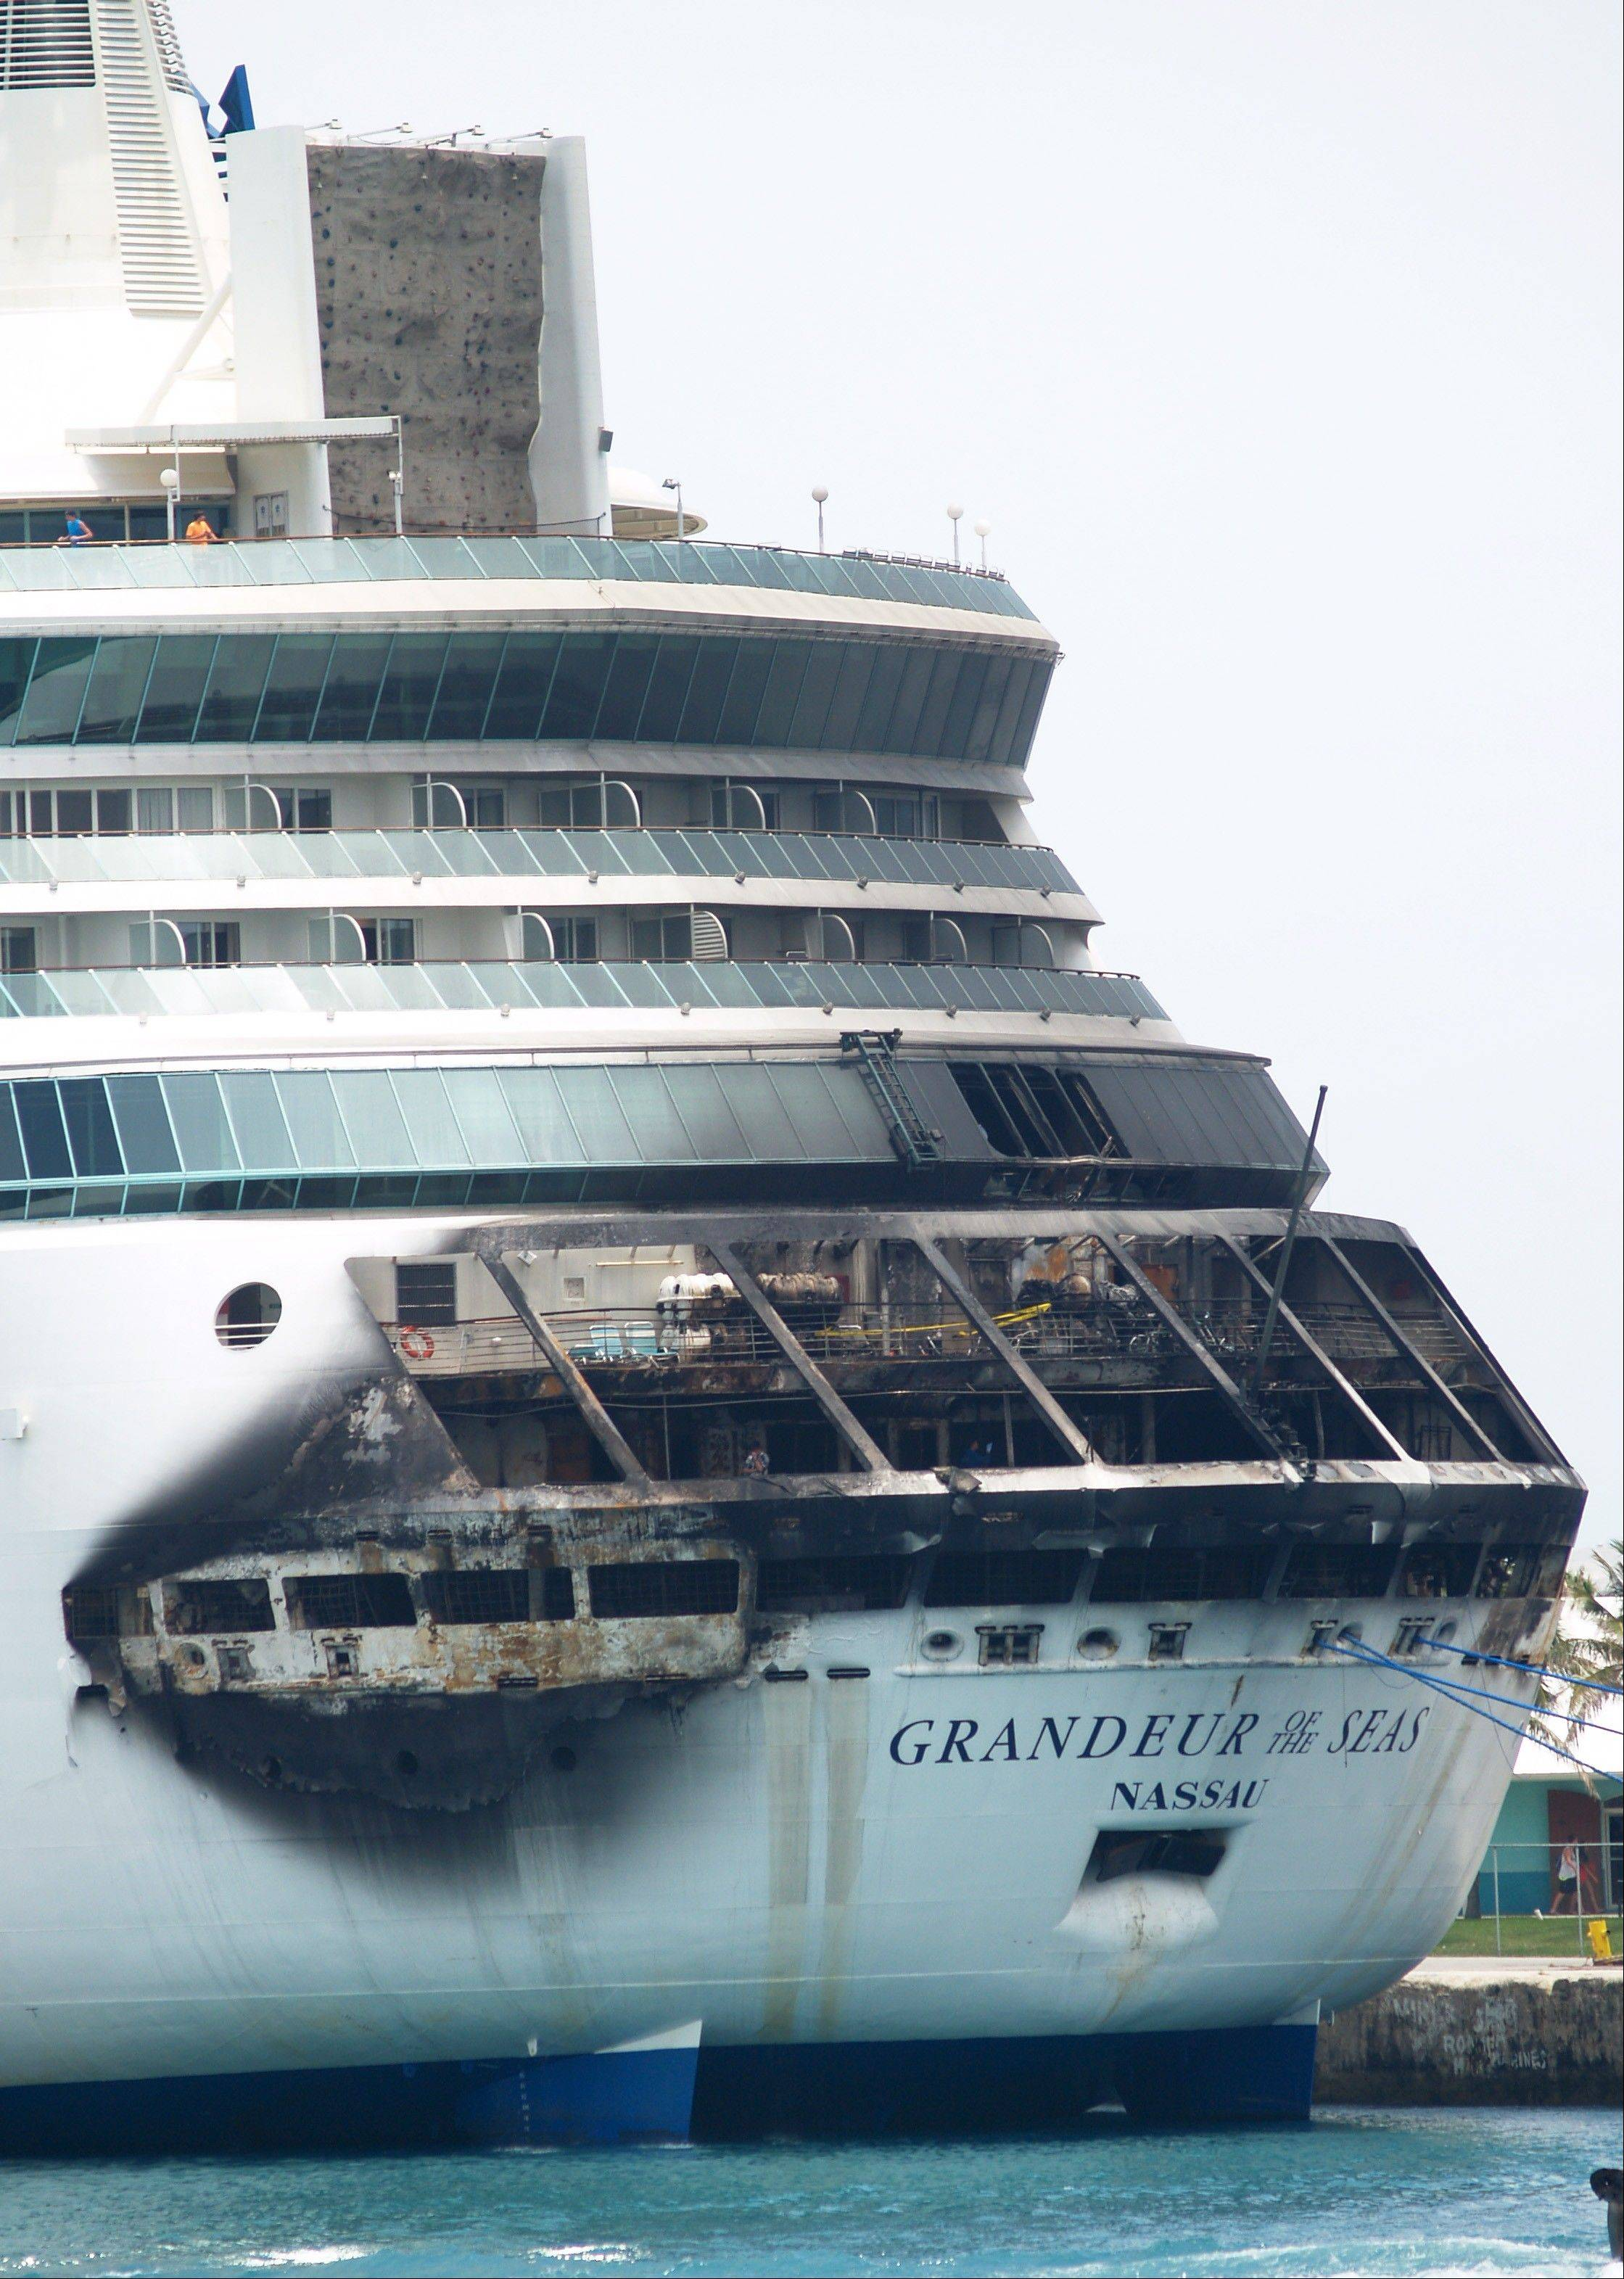 The fire-damaged exterior of Royal Caribbean�s Grandeur of the Seas cruise ship is seen while docked in Freeport, Grand Bahama island, Monday. Royal Caribbean said the fire occurred early Monday while on route from Baltimore to the Bahamas on the mooring area of deck 3 and was quickly extinguished. All 2,224 guests and 796 crew were safe and accounted for.